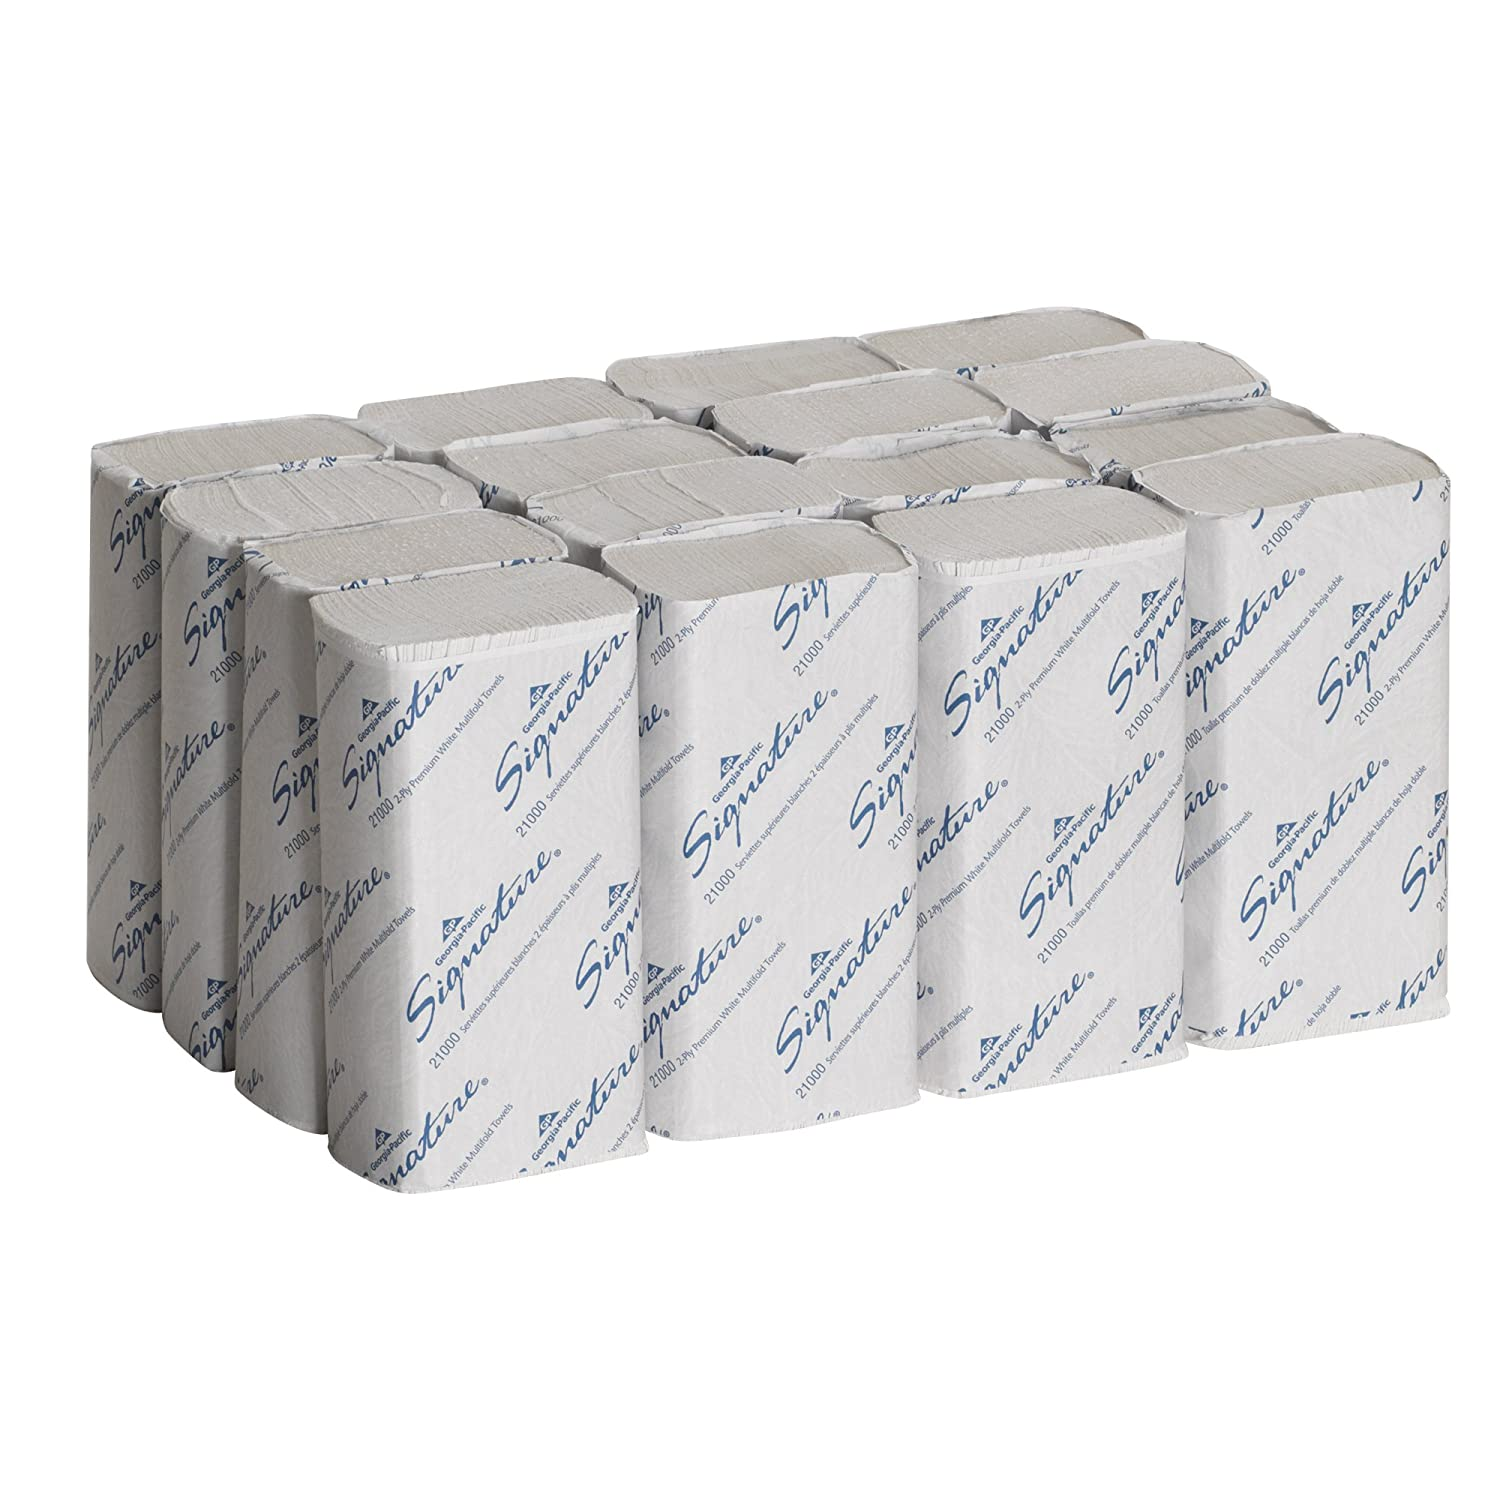 Georgia-Pacific GEP21000 Signature 2-Ply Premium Multifold Paper Towel, White, 9.4-inch x 9.2-inch (Case of 16 Packs, 125 per Pack)